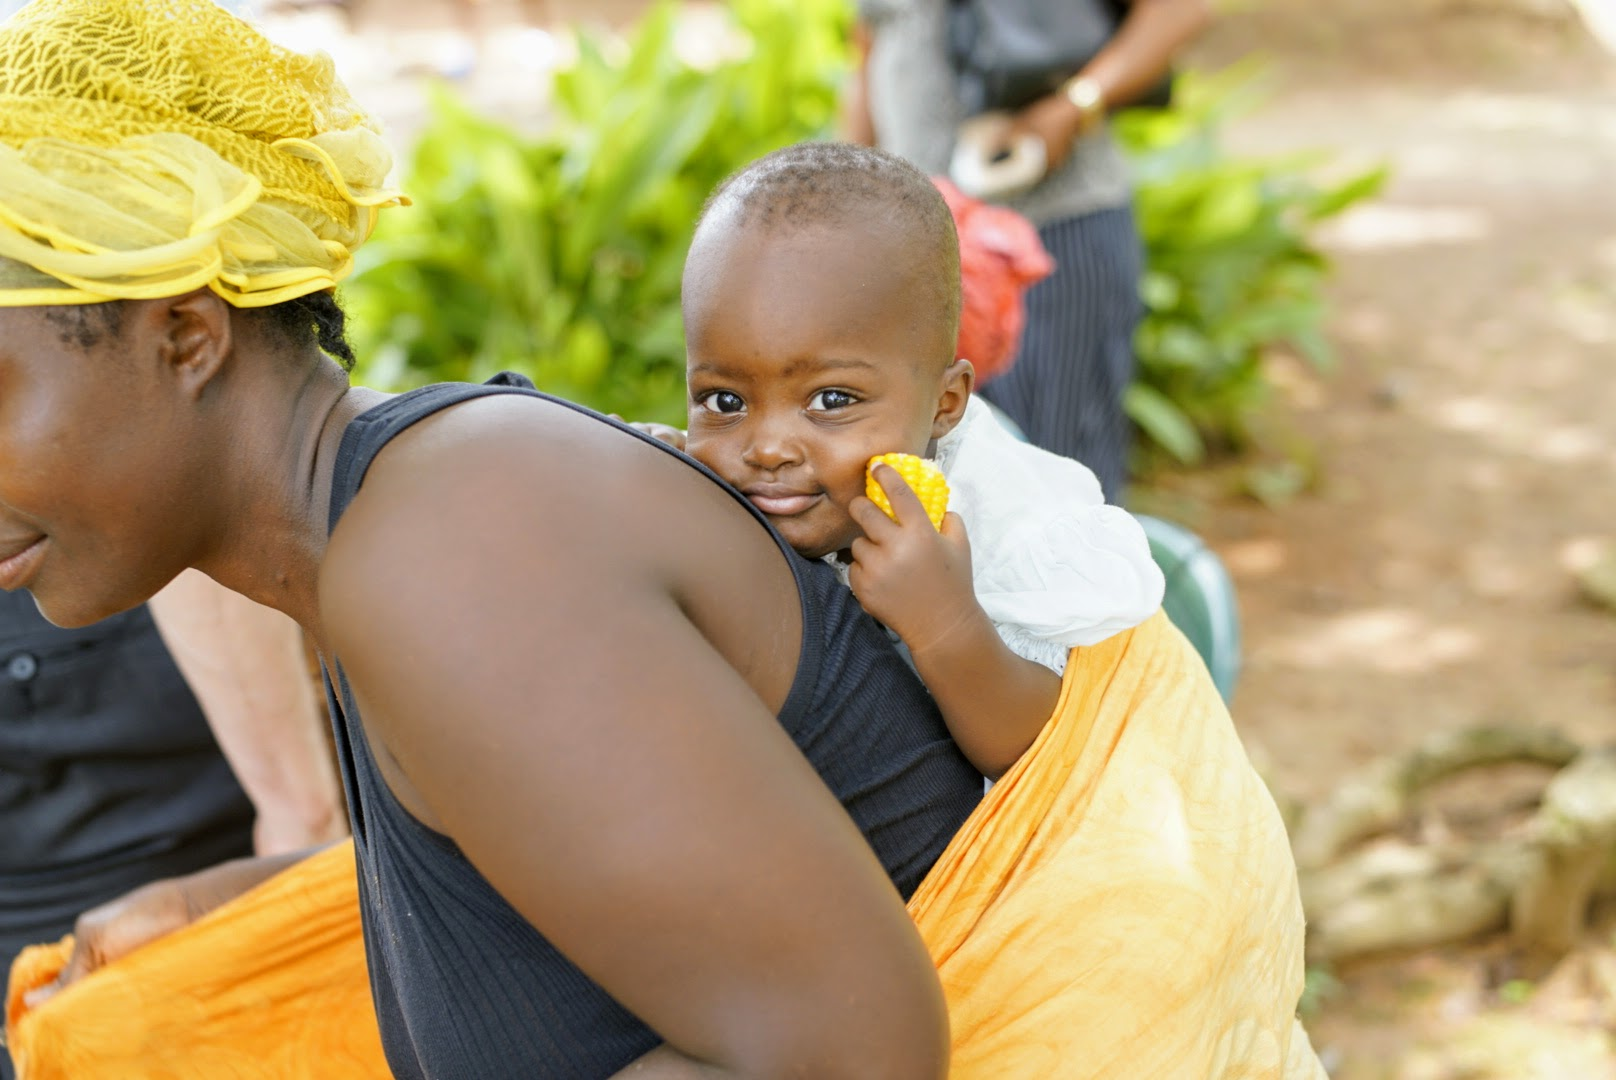 A mother carries her baby on her back in Sierra Leone.